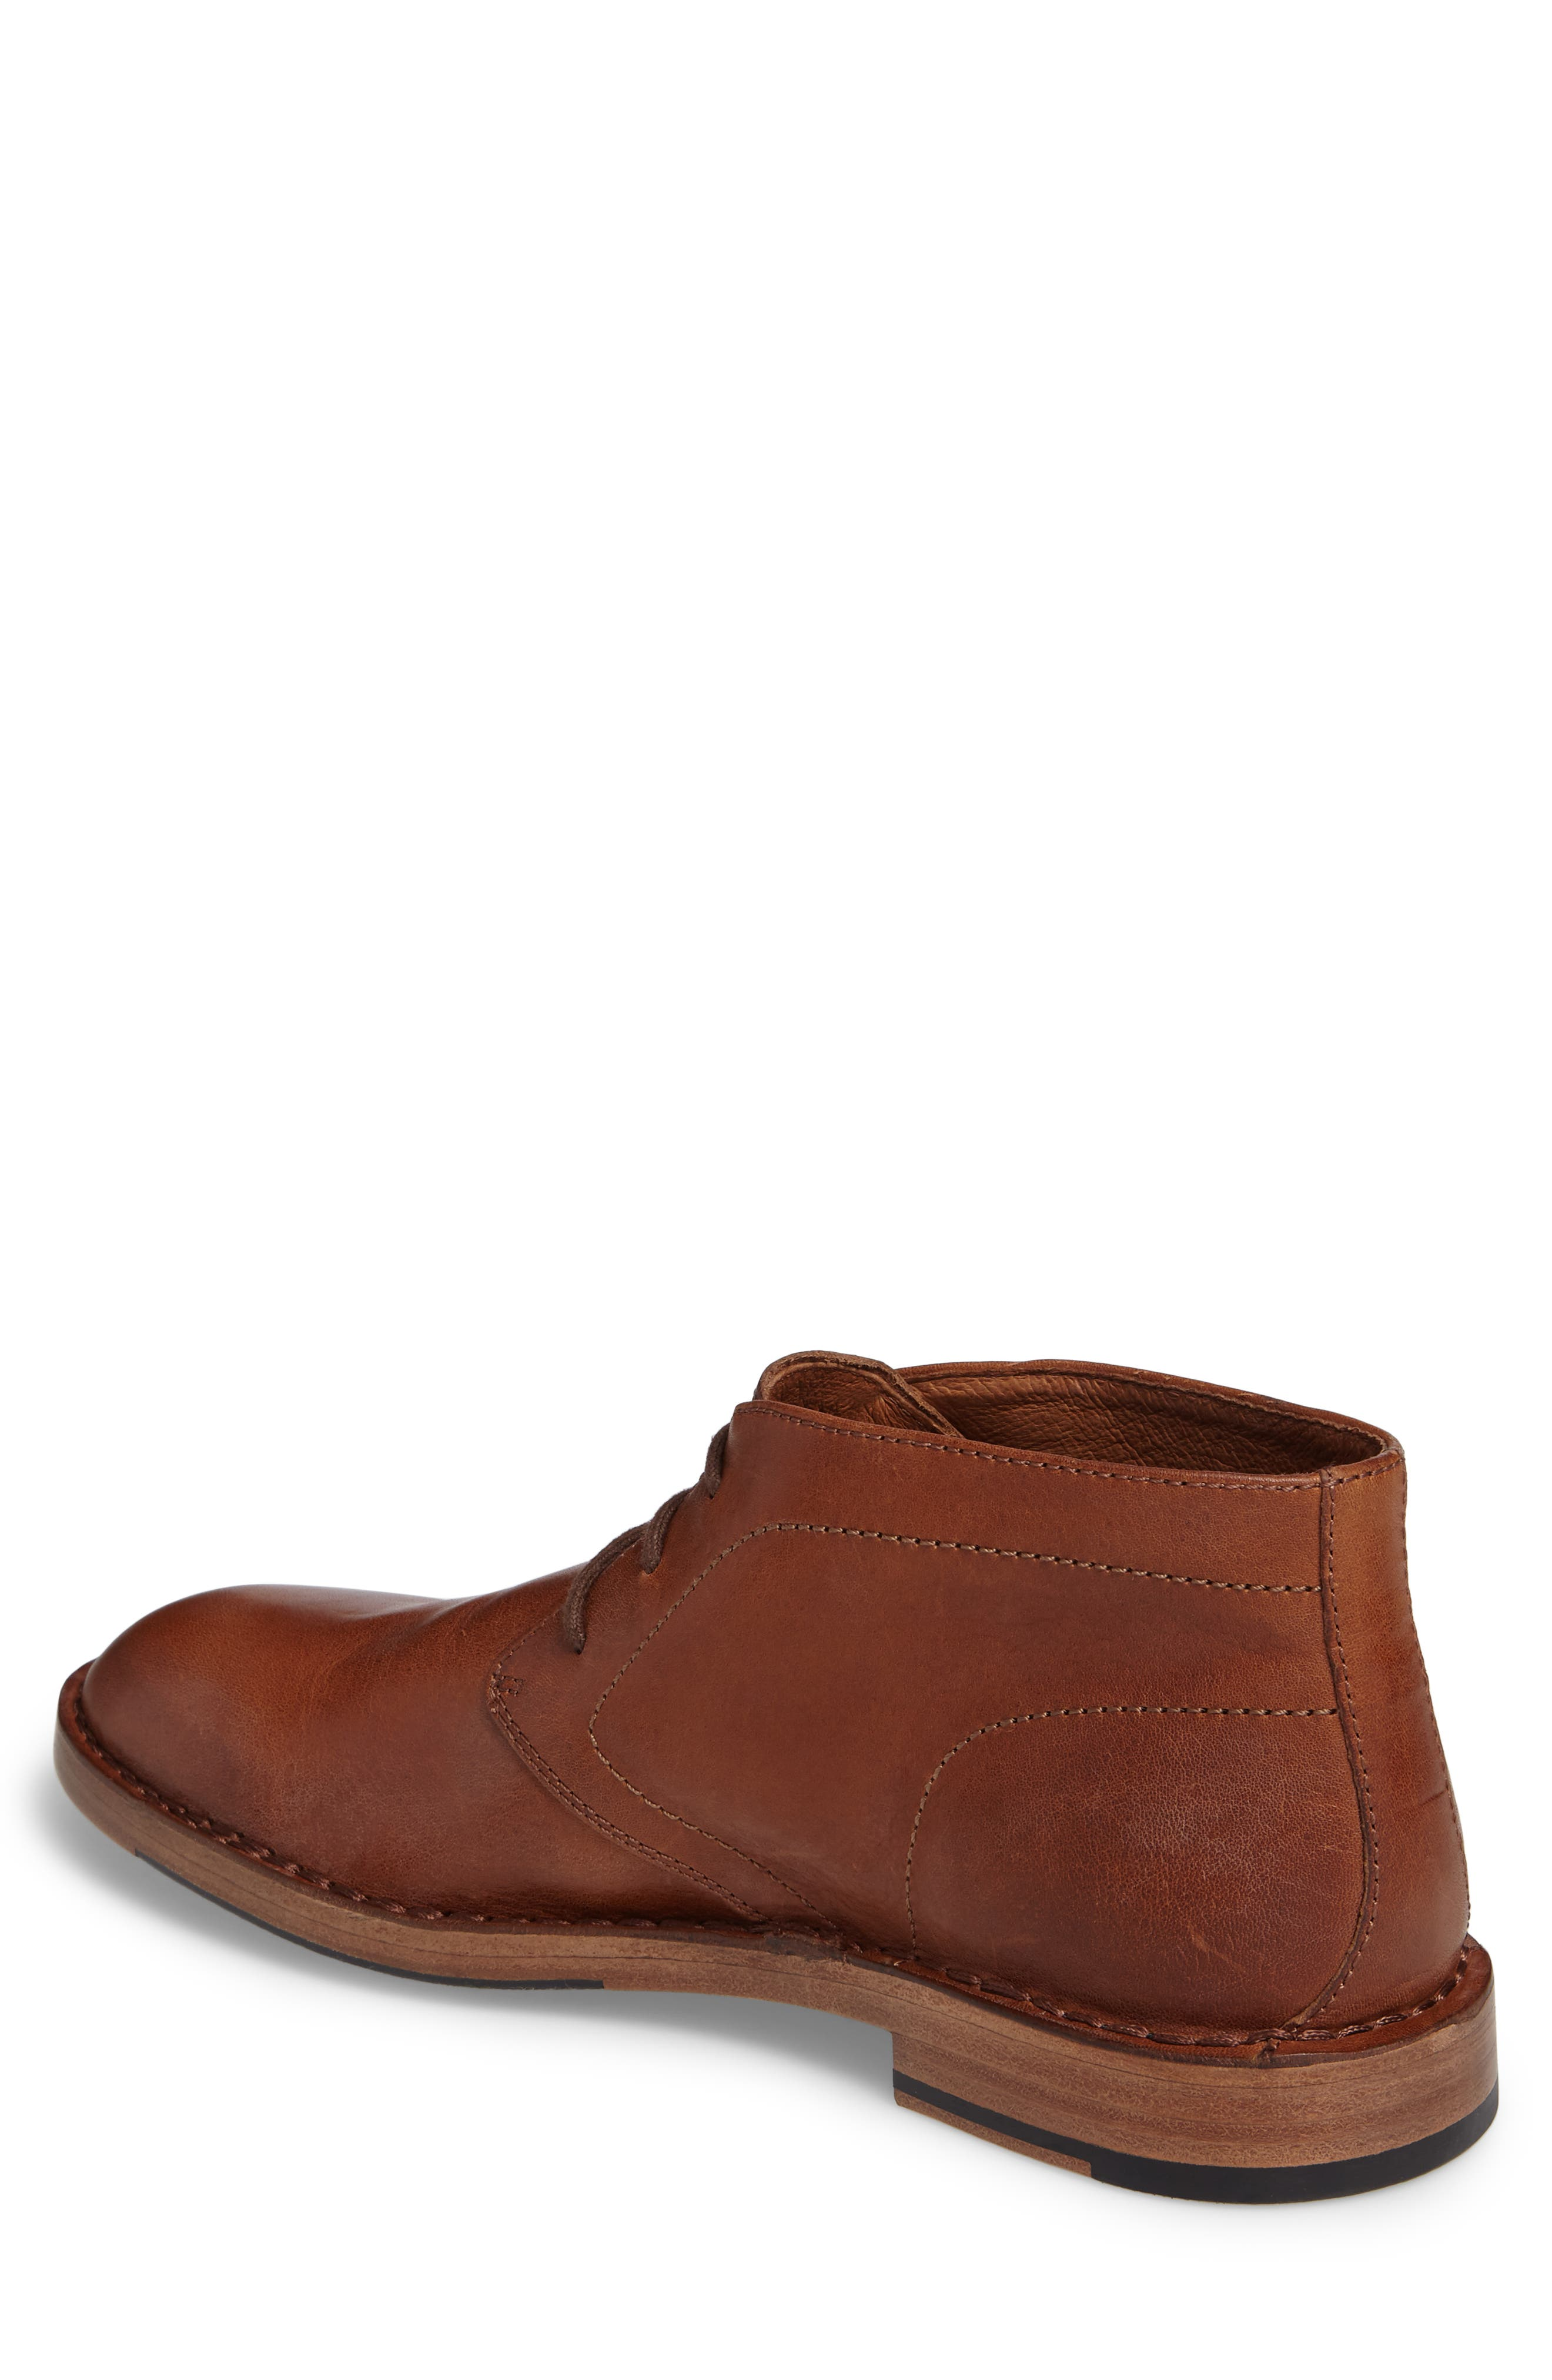 Mark Chukka Boot,                             Alternate thumbnail 2, color,                             Copper Leather